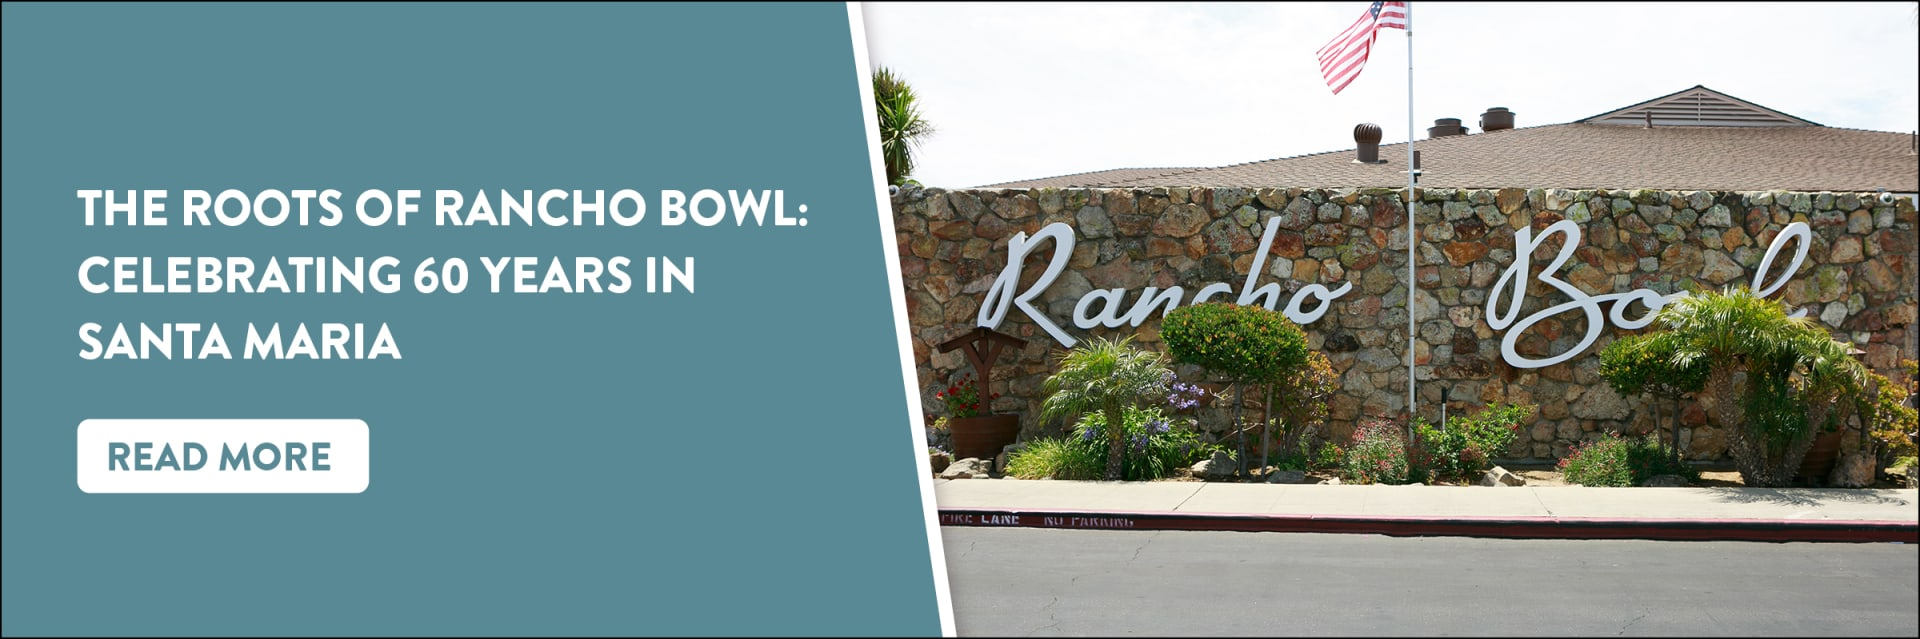 rancho-bowl-web-slider-w1920.jpg